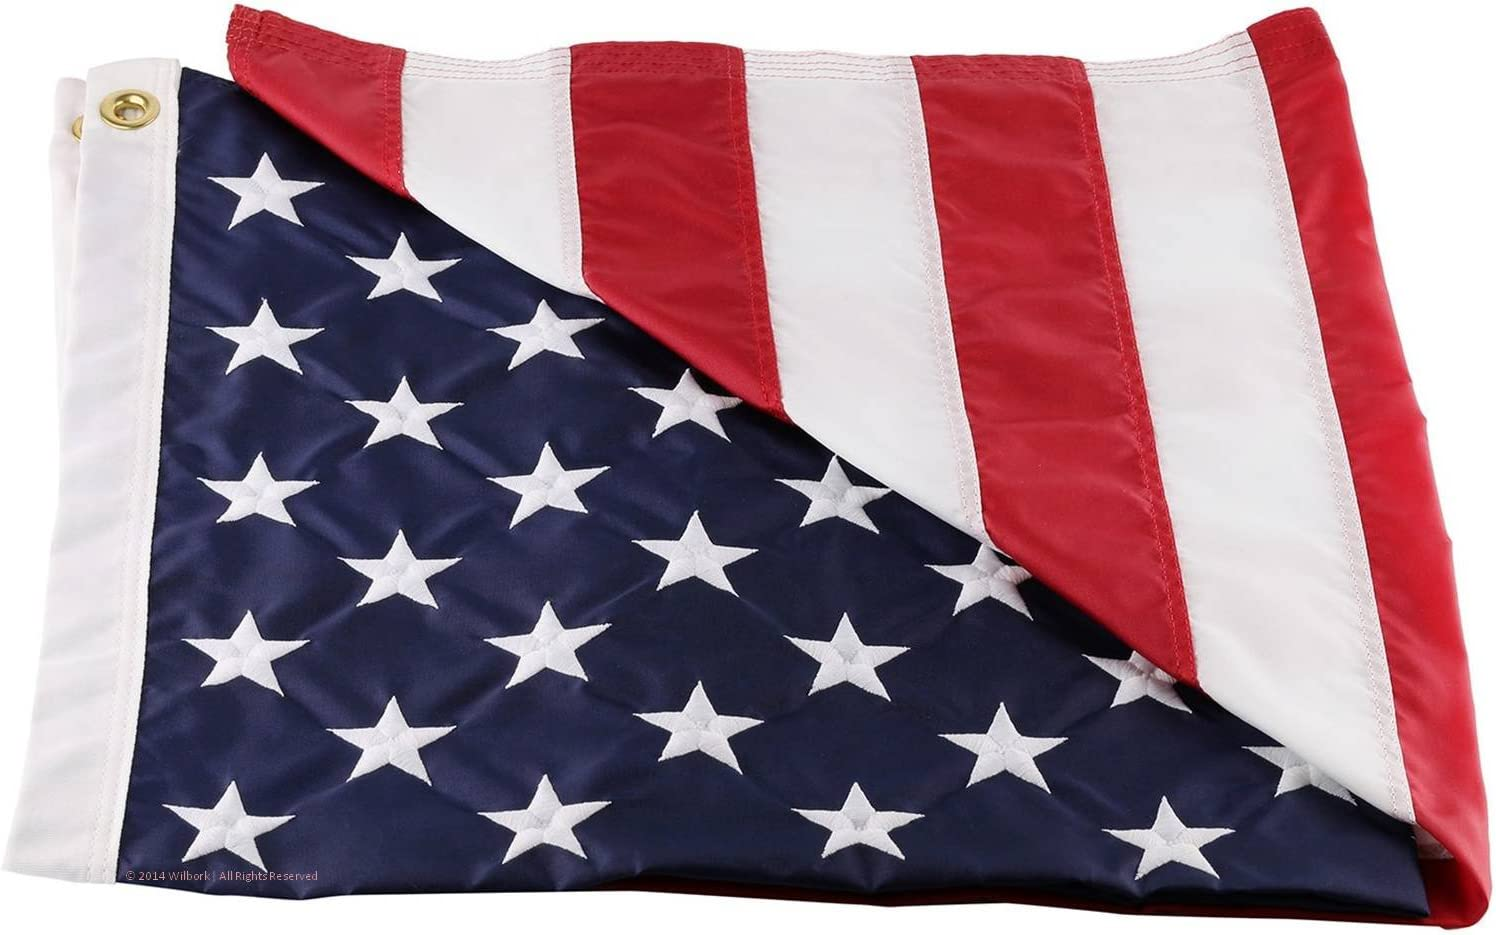 Wilbork American Flag - 100% Branded goods Made USA Like Americans in Strong Max 66% OFF